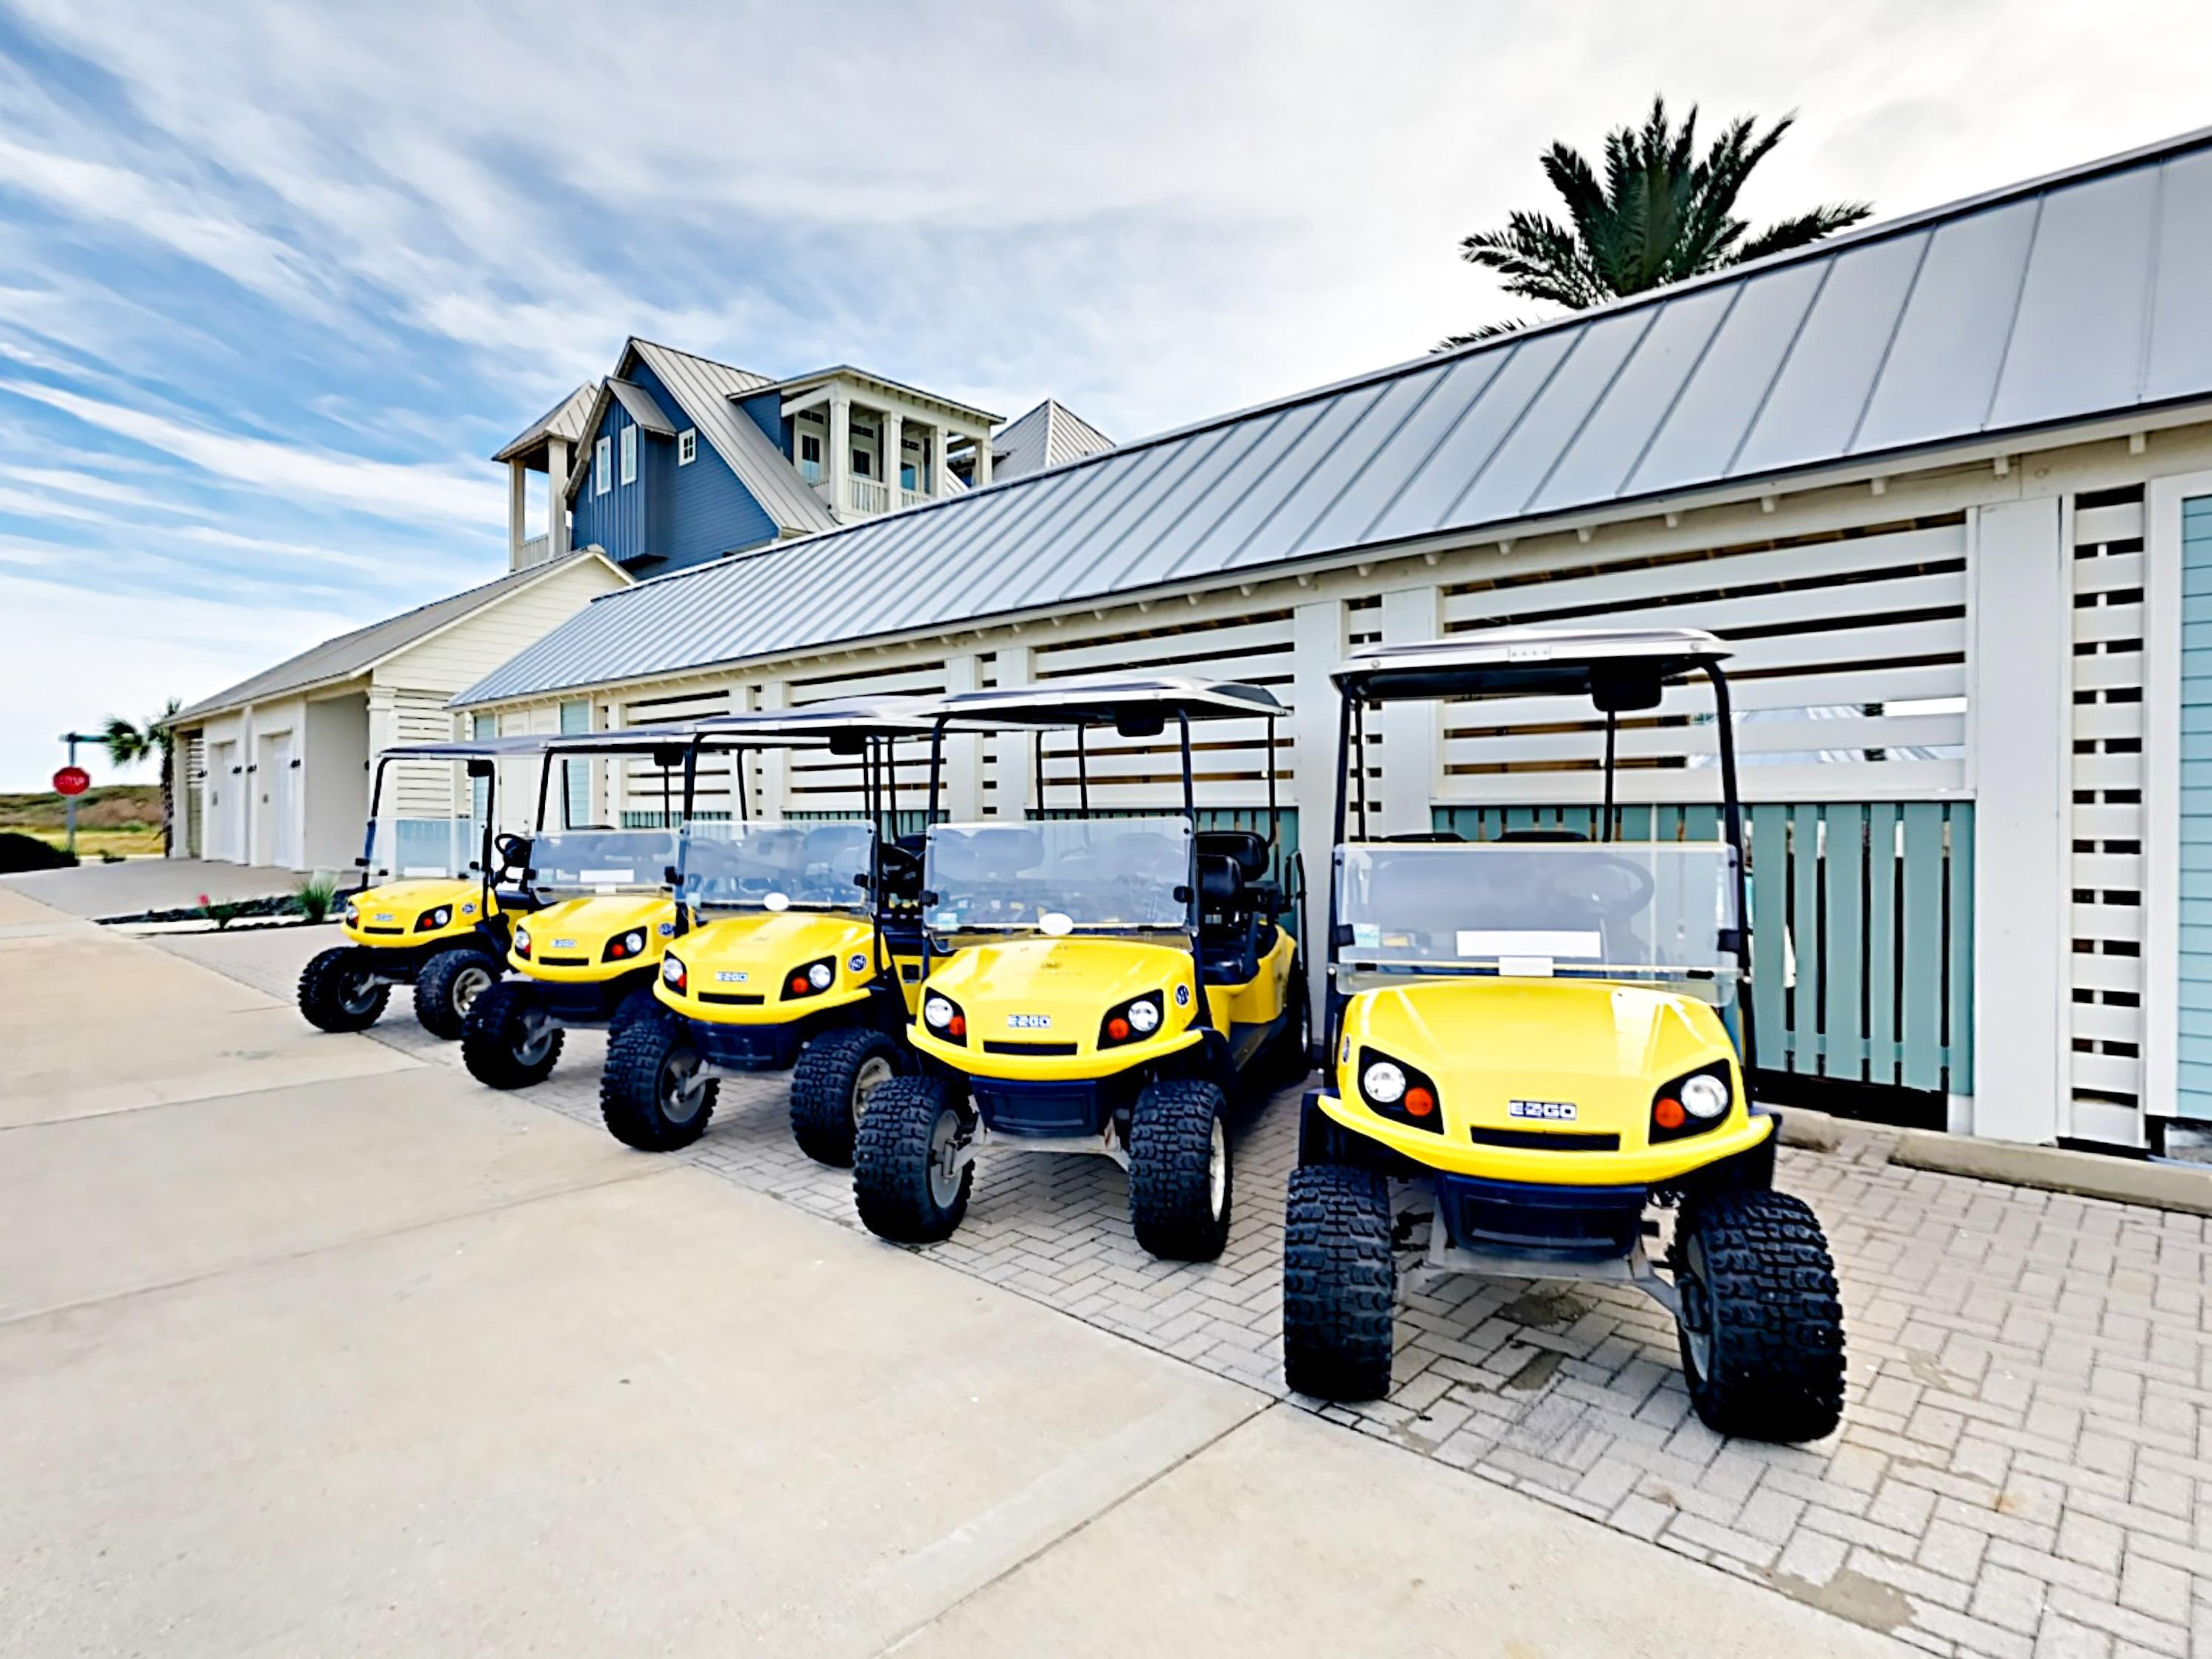 Rental items such as golf carts, bicycles, beach chairs, and umbrellas are available.